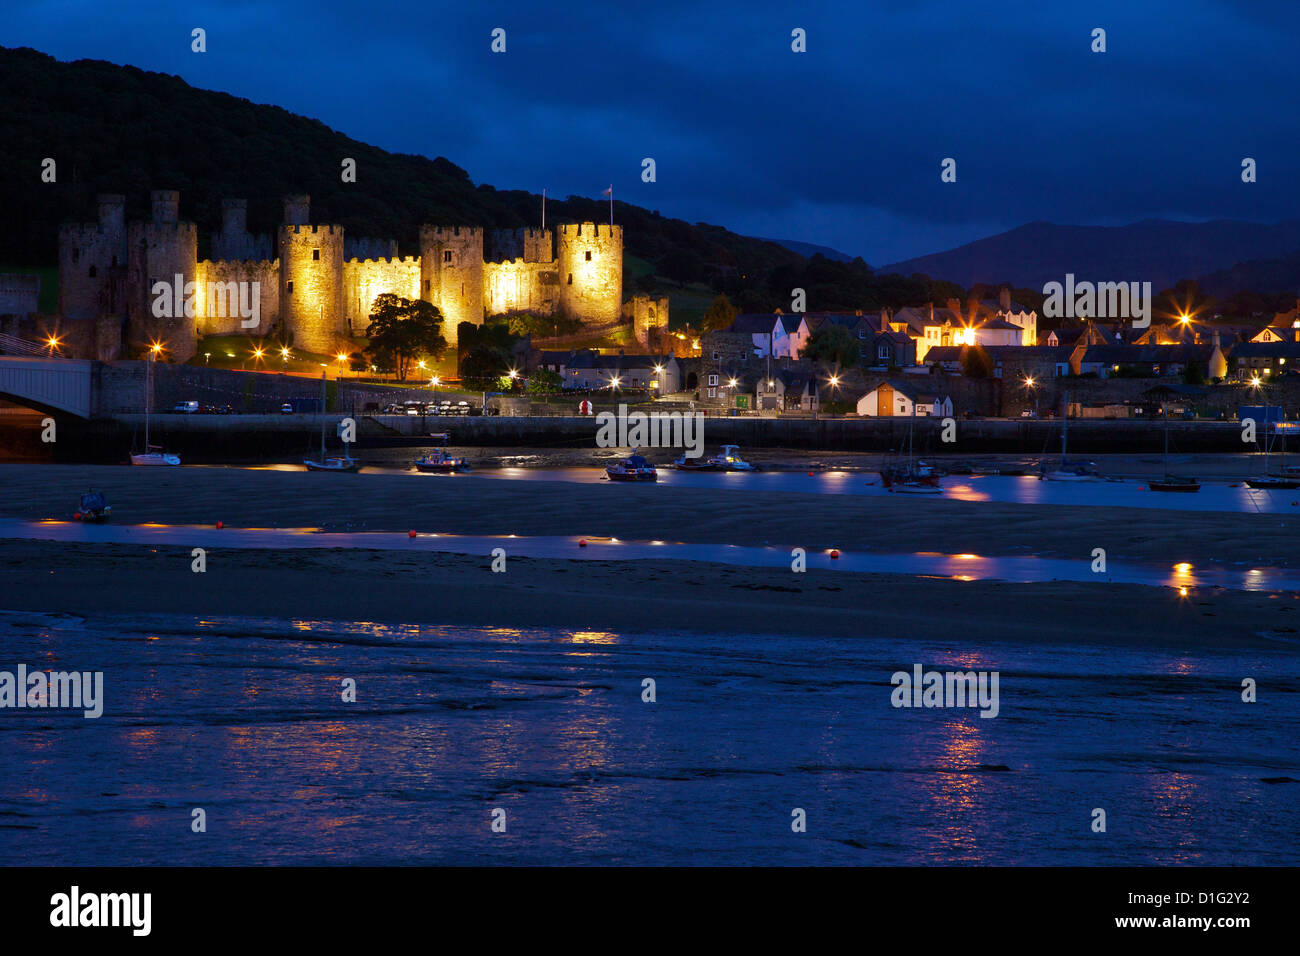 River Conwy estuary and medieval castle, UNESCO World Heritage Site, Gwynedd, North Wales, United Kingdom, Europe - Stock Image